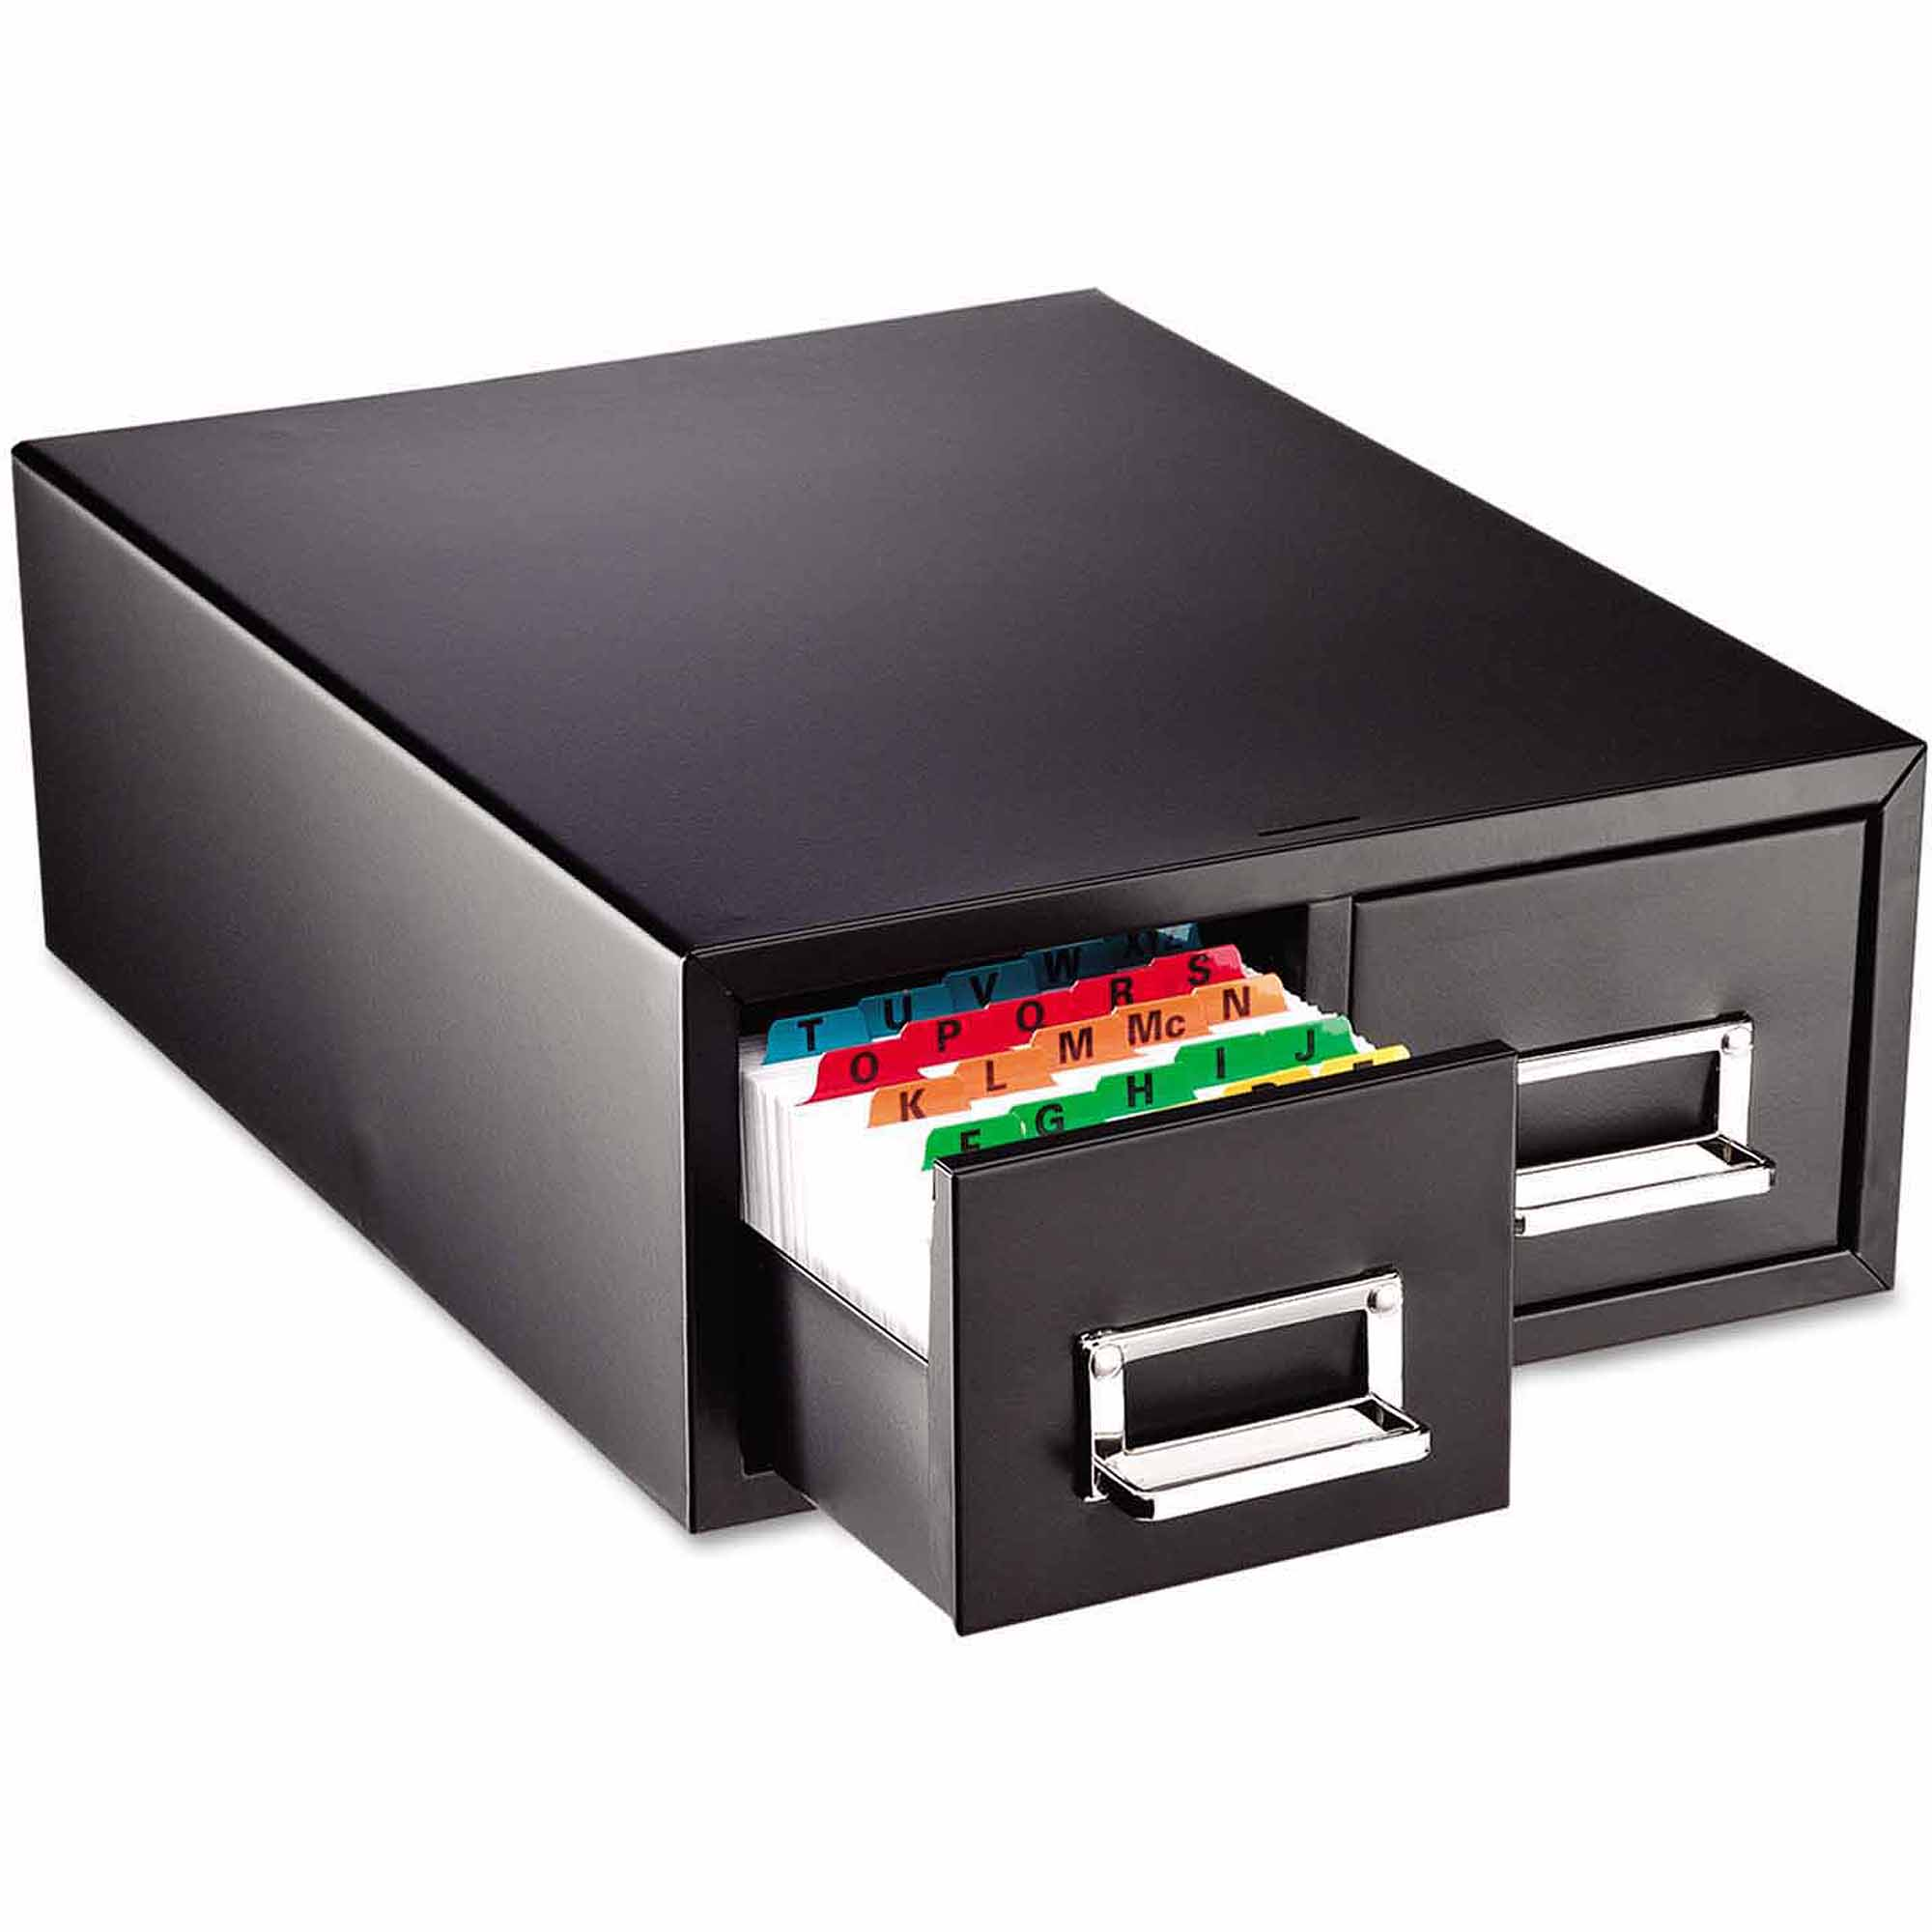 "SteelMaster Drawer Card Cabinet, Holds 3,000 5"" x 8"" cards"